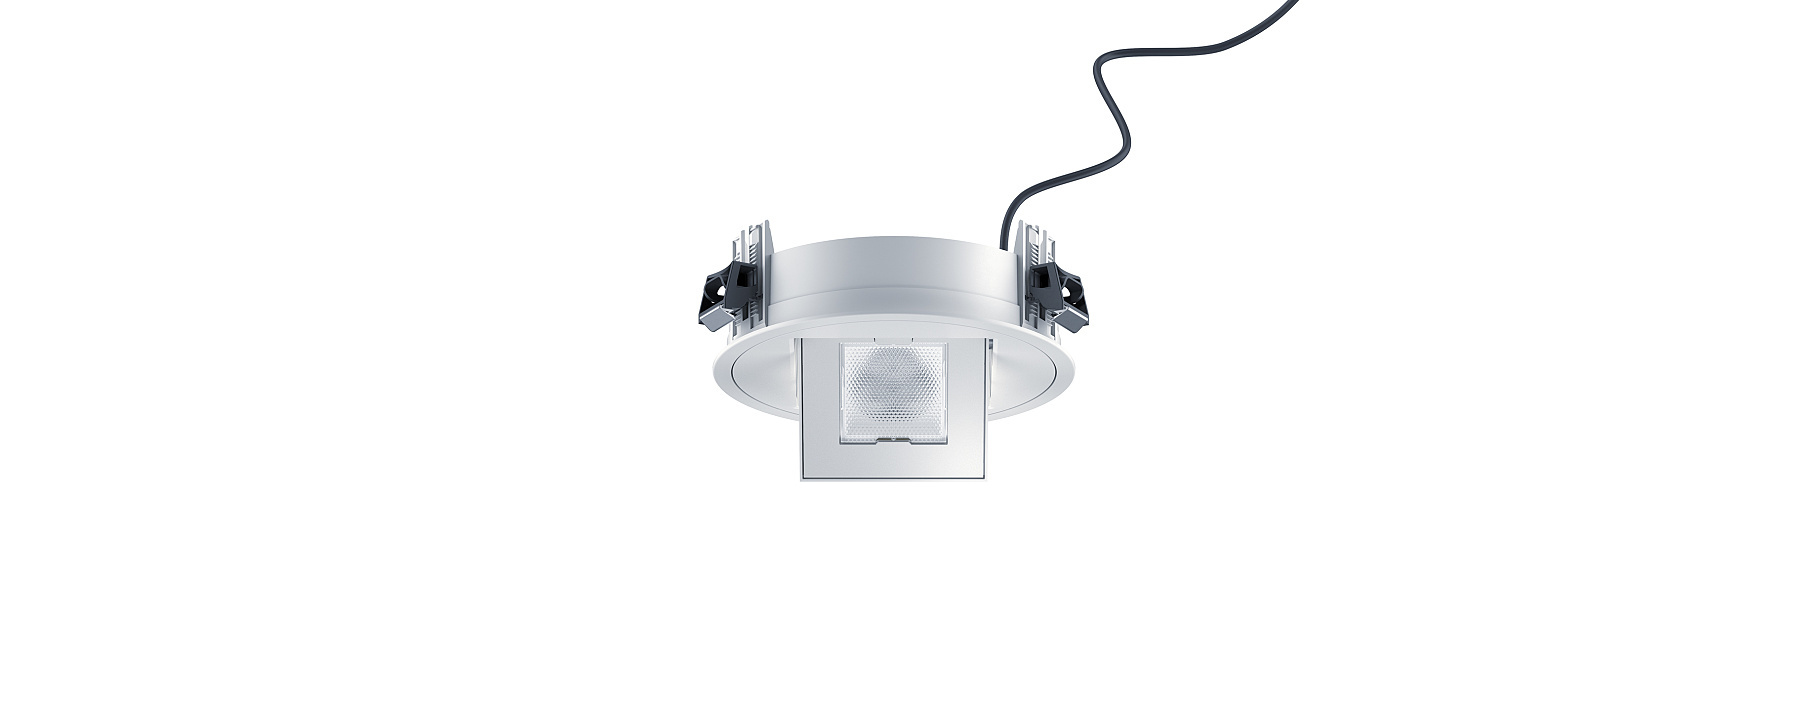 Cantax - Recessed spotlights, recessed floodlights and recessed wallwashers